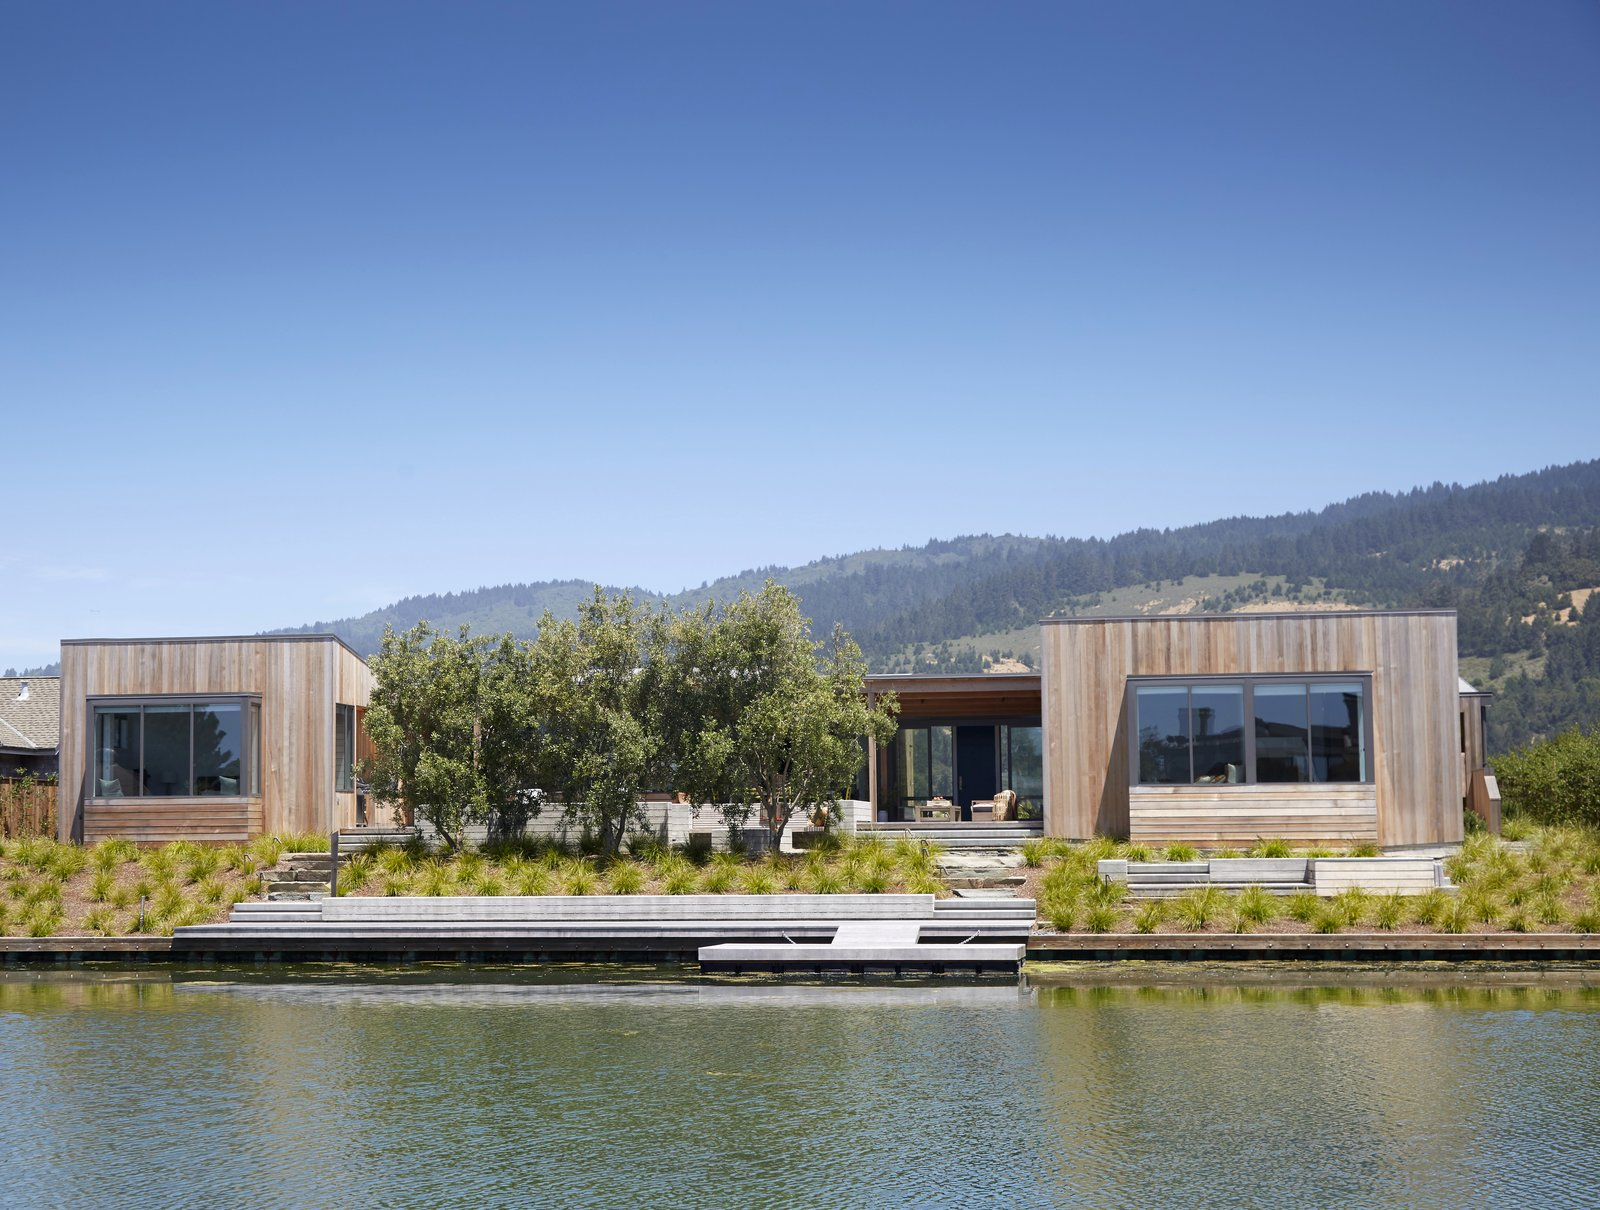 #TurnbullGriffinHaesloop #outdoor #exterior #landscape #lagoon #dock  Stinson Beach Lagoon Residence by Turnbull Griffin Haesloop Architects